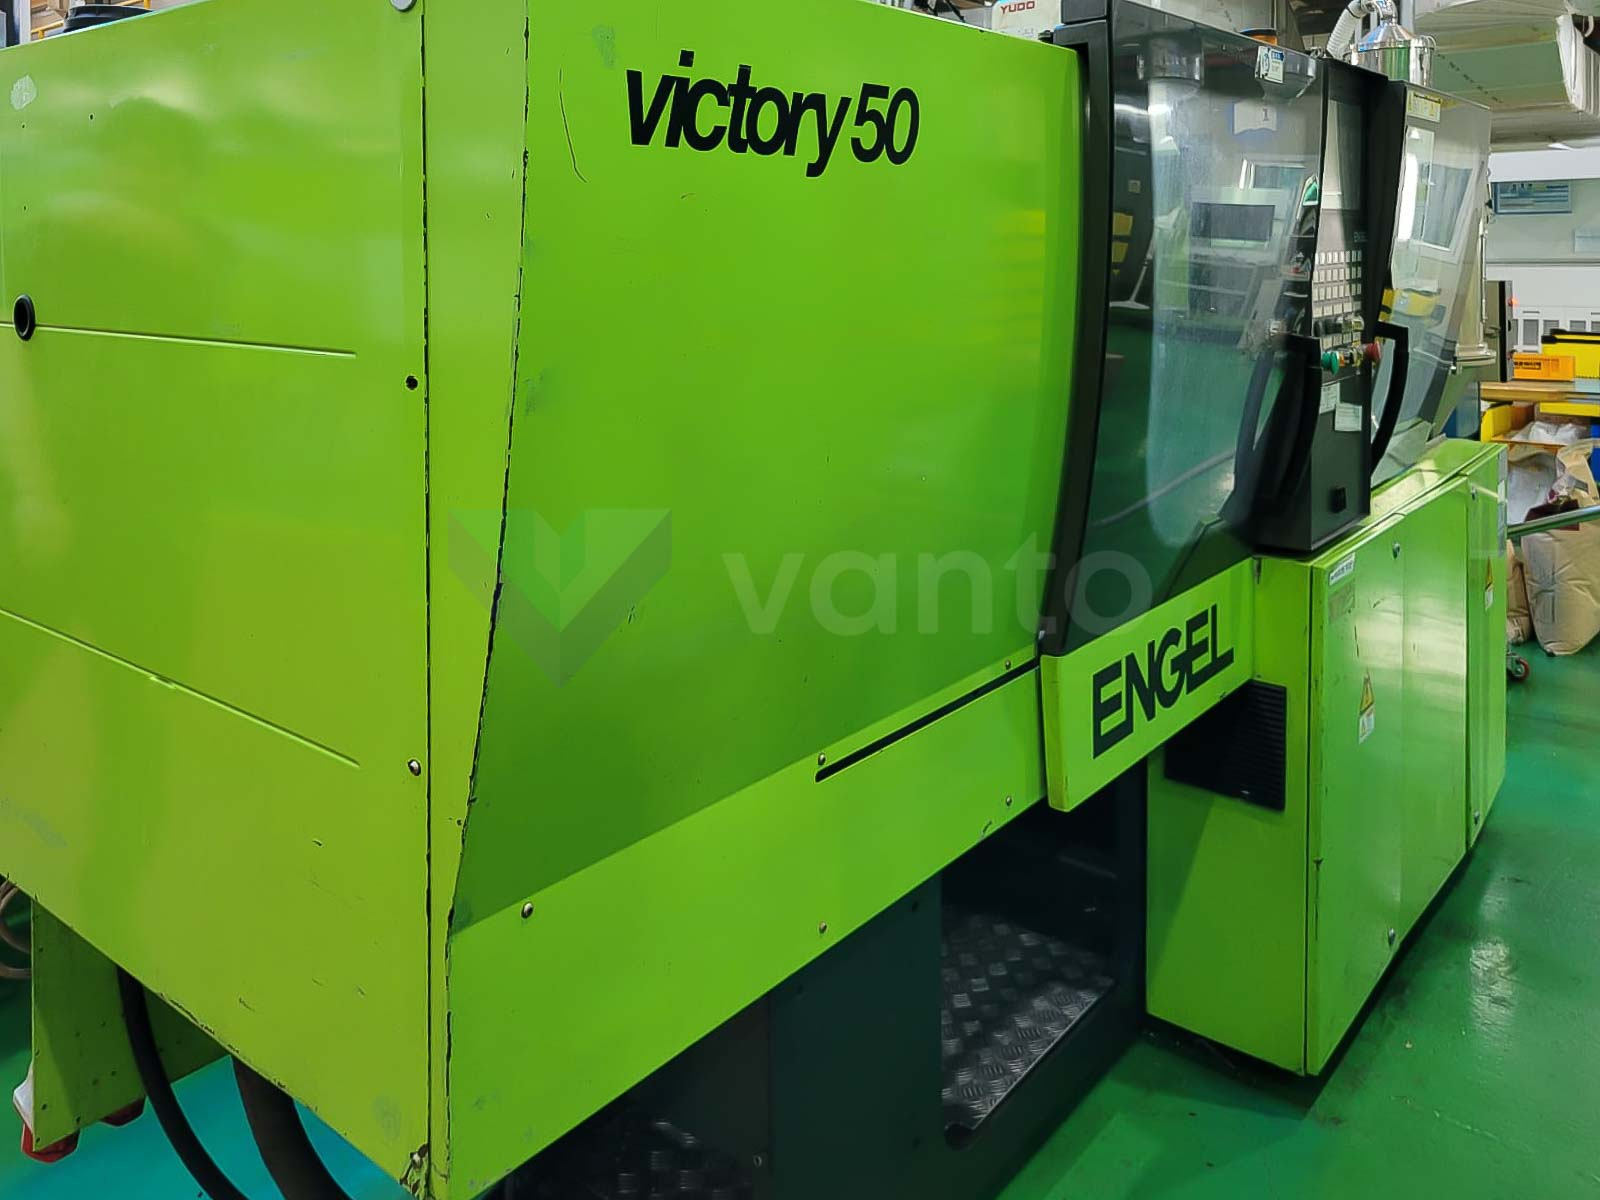 ENGEL VICTORY VC 80 / 50 TECH PRO 50t injection molding machine (2010) id10527